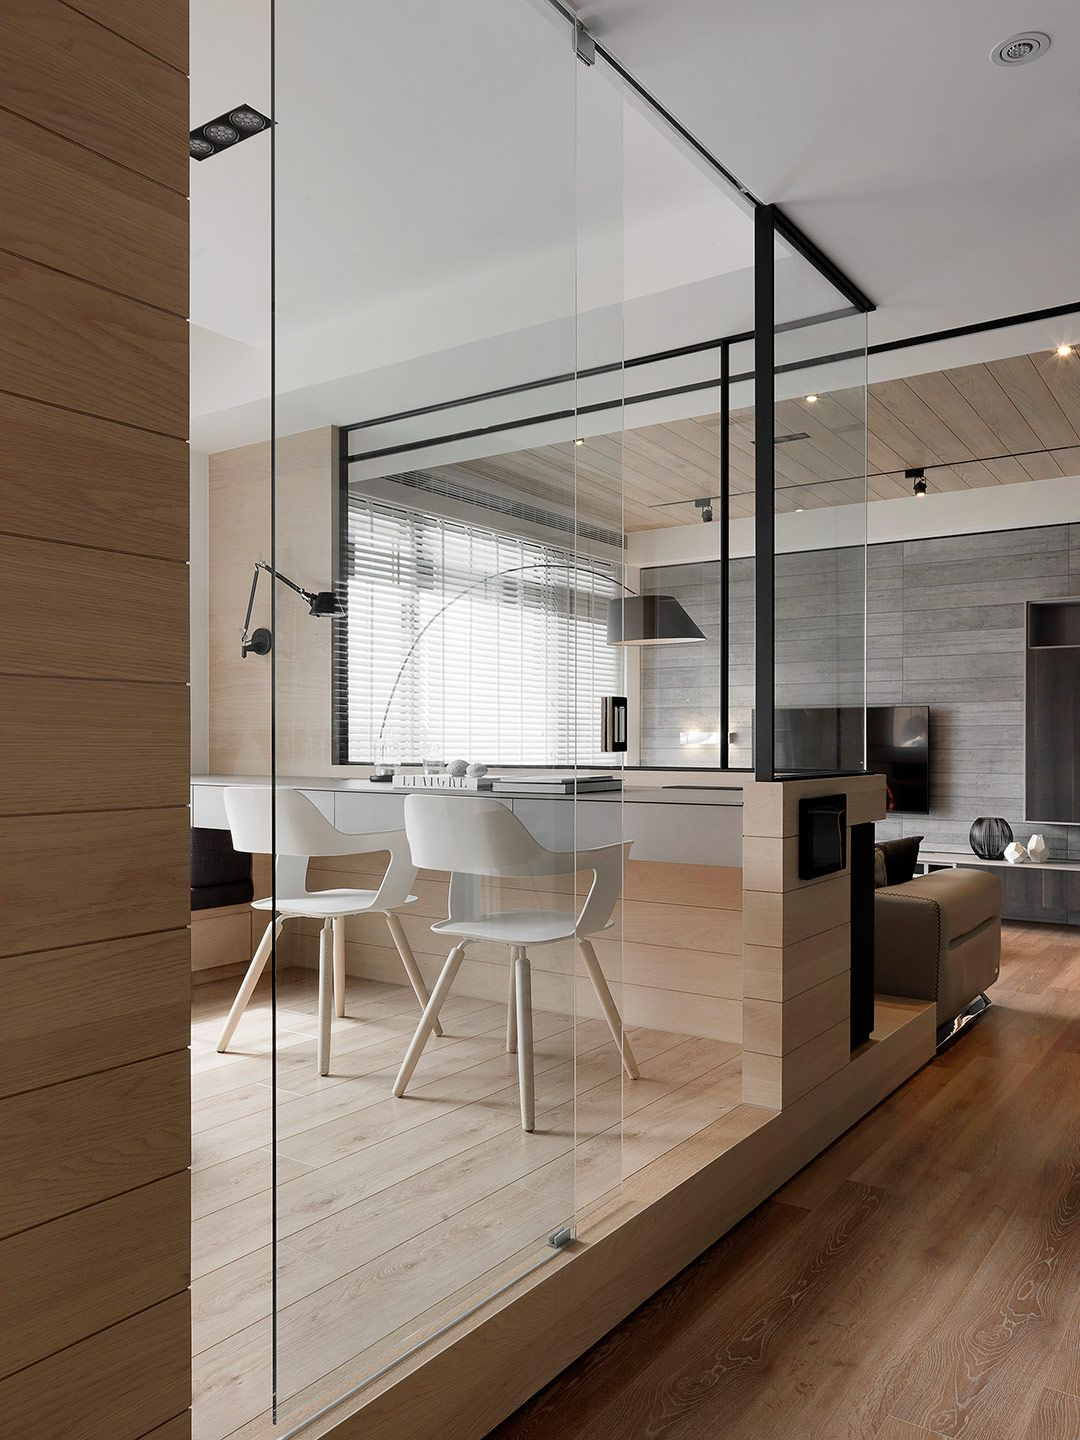 30 Minimalist Living Room Ideas Inspiration To Make The Most Of Your Space: Study Room Design, Glass Partition Designs, Minimalist Home